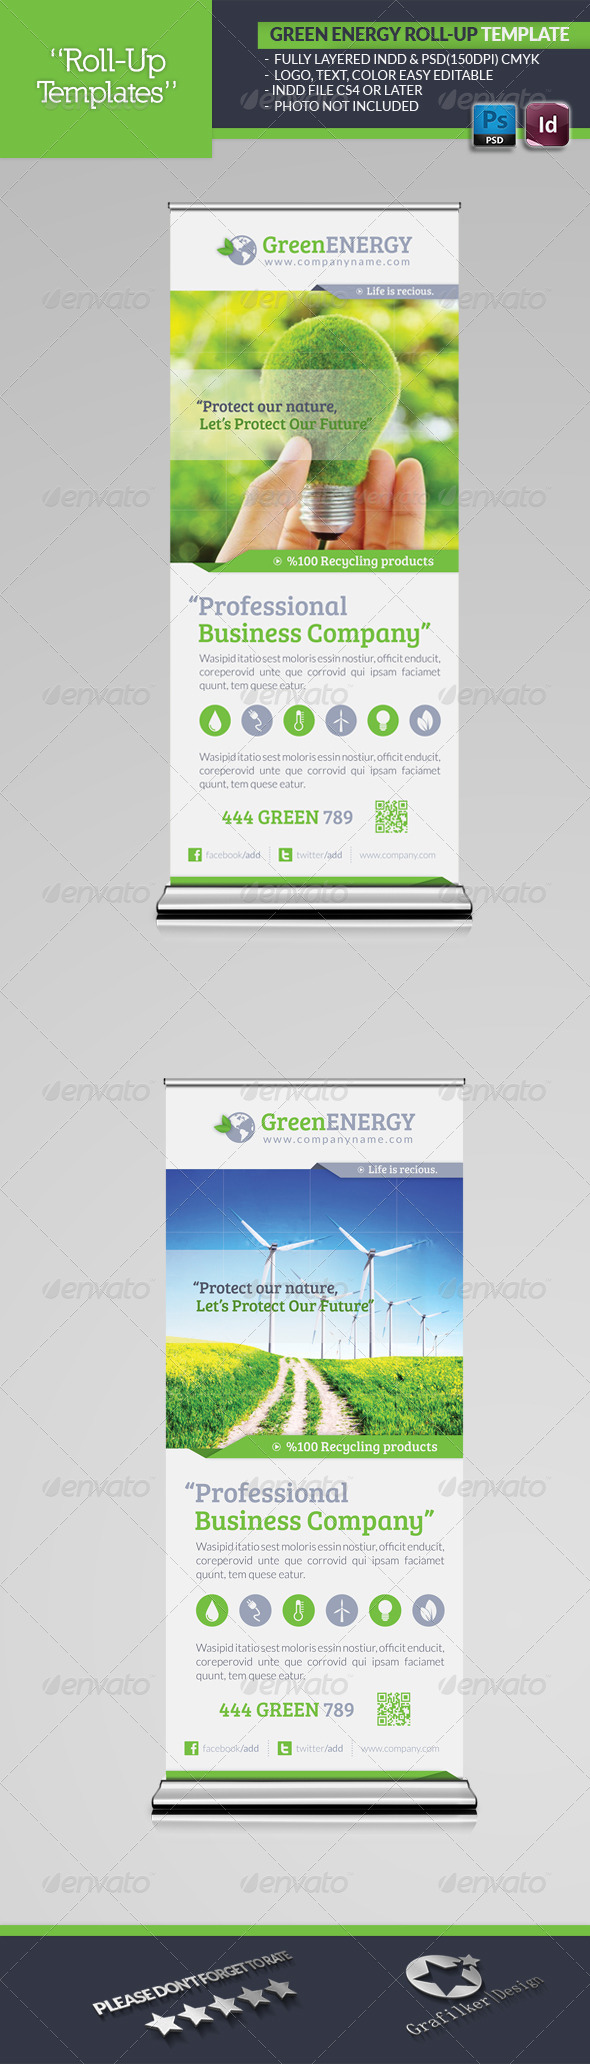 Green Energy Roll-Up Template - Signage Print Templates